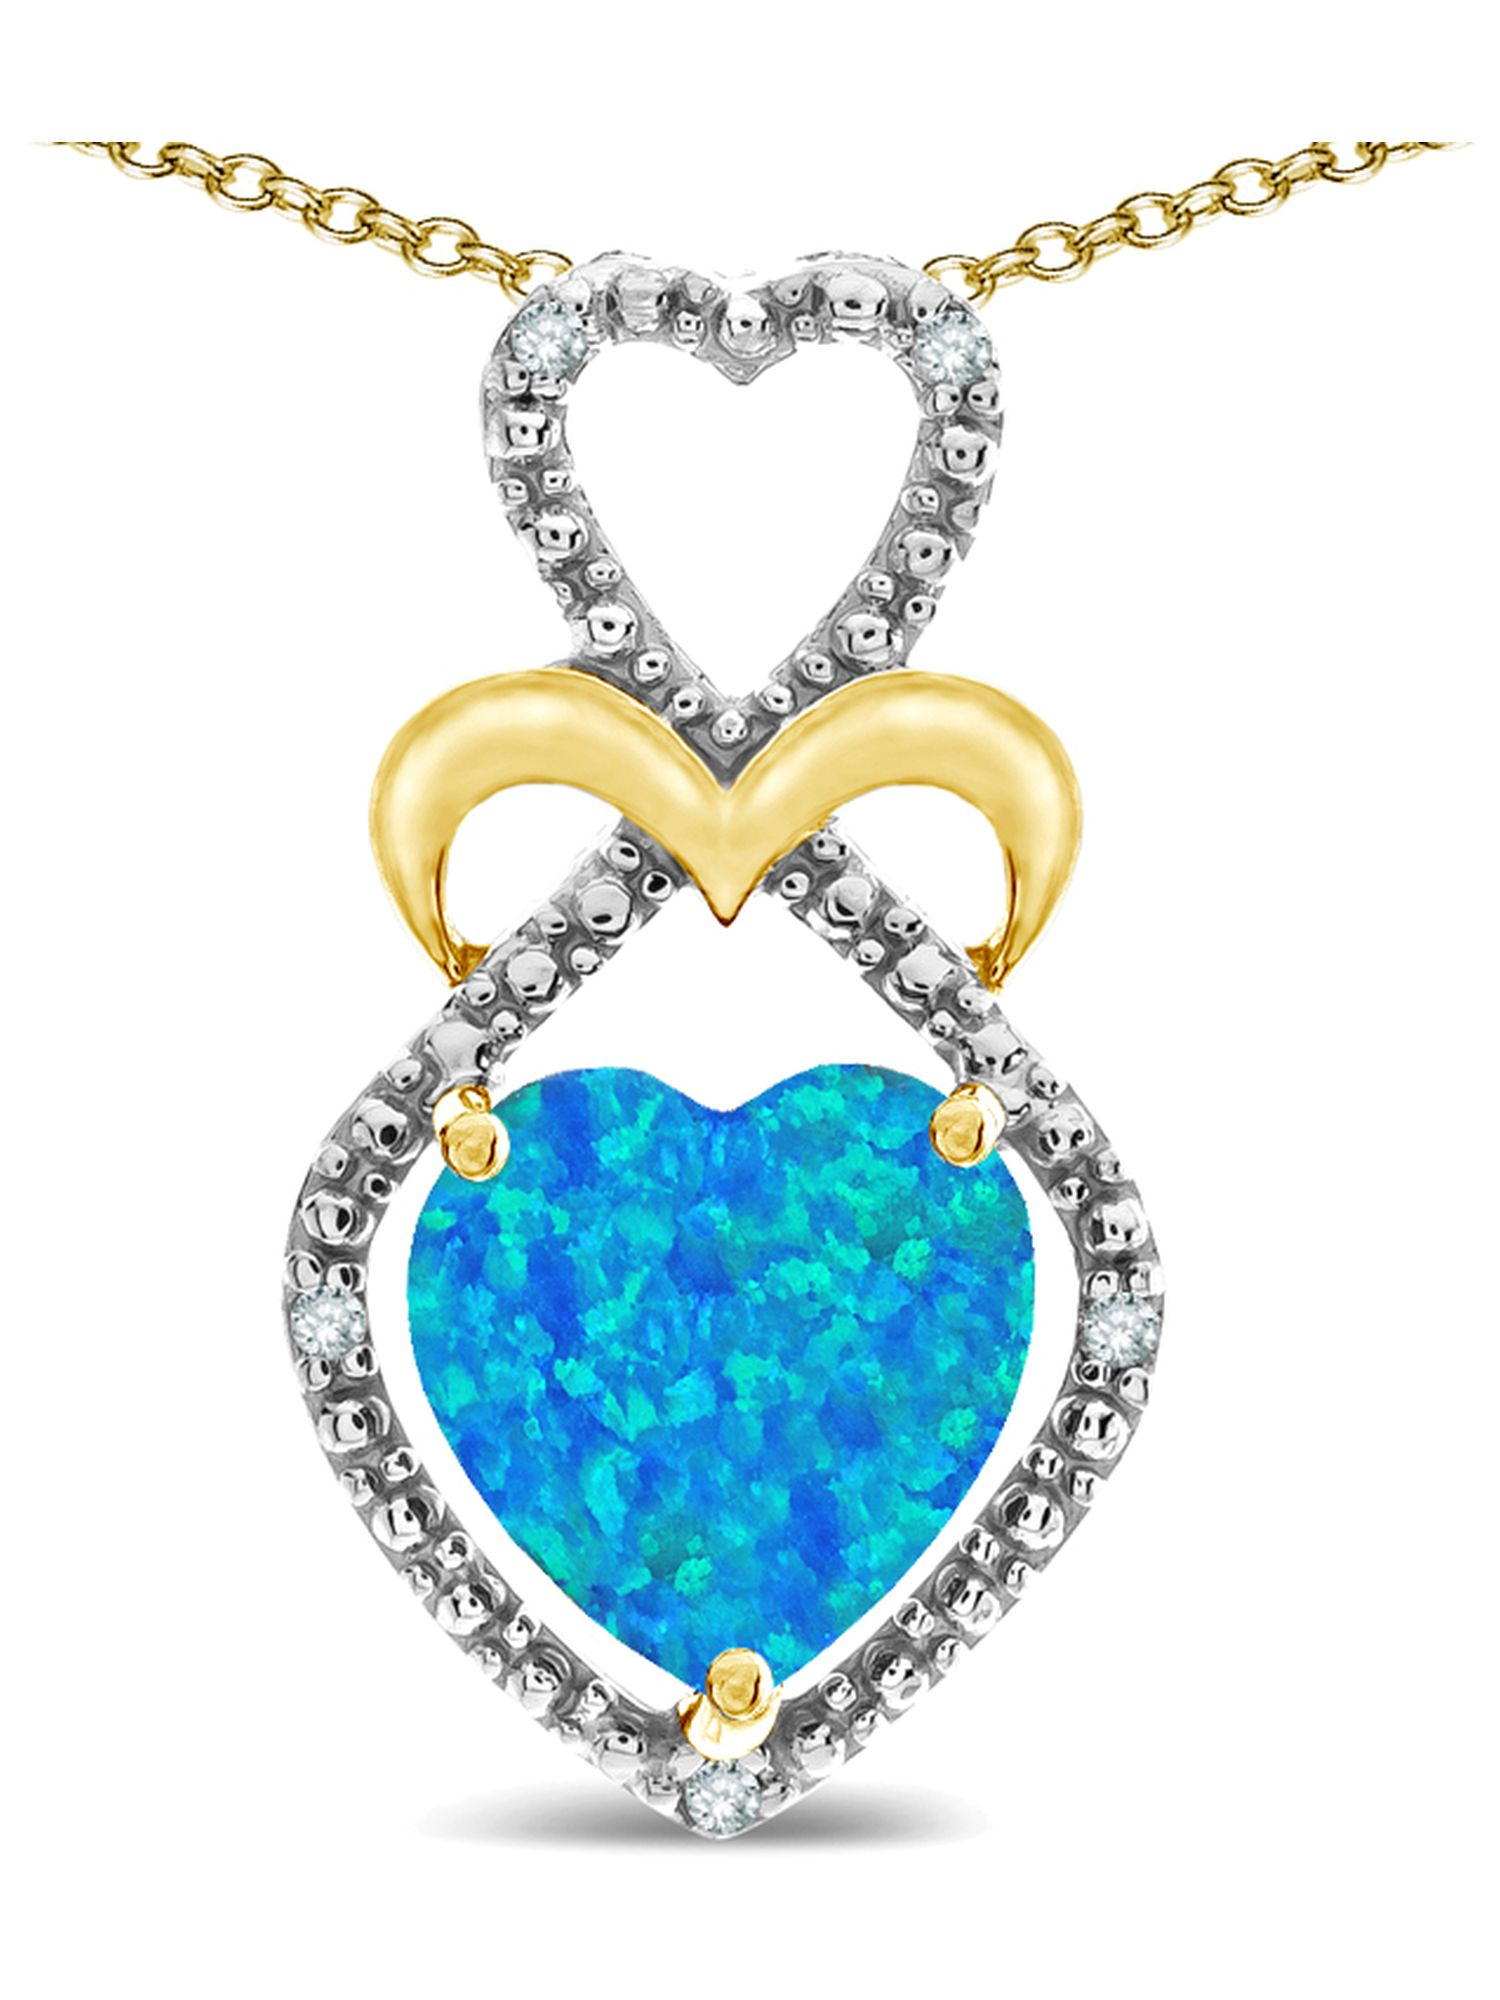 Star K Heart Shape 8mm Blue Created Opal Heart Halo Embrace Pendant Necklace 14k Yellow Gold with Rhodium Finish by Star K